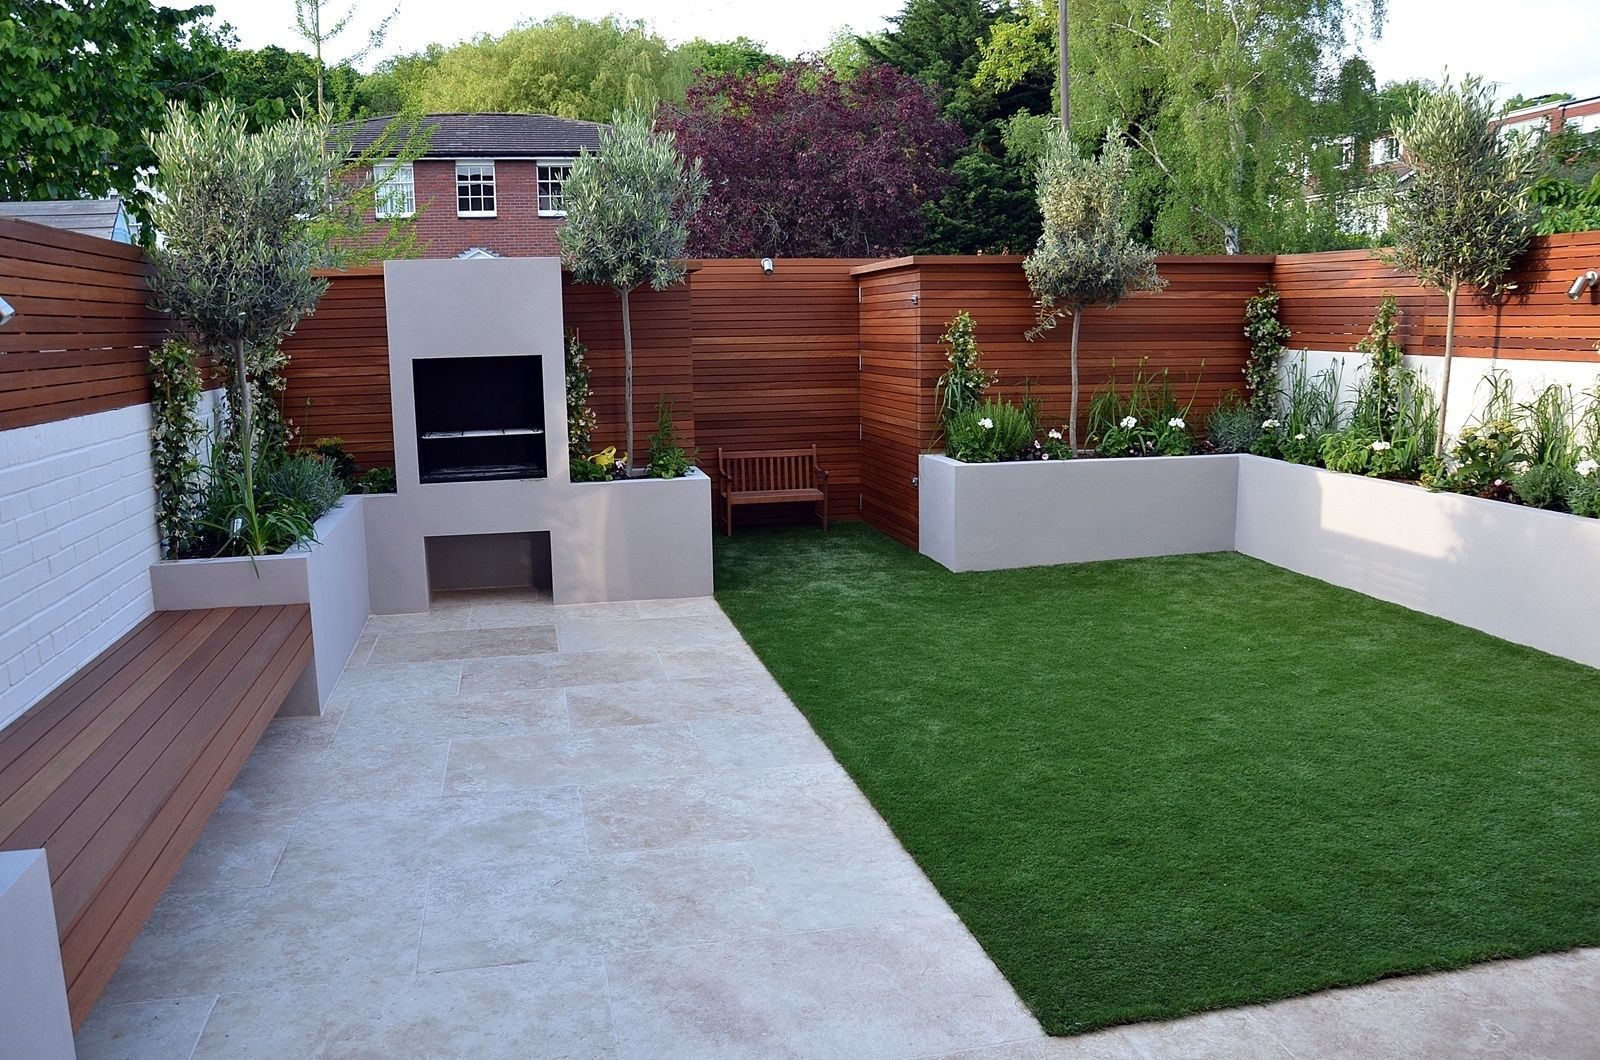 10 Modern Garden Design Ideas, Awesome as well as Stunning in 10